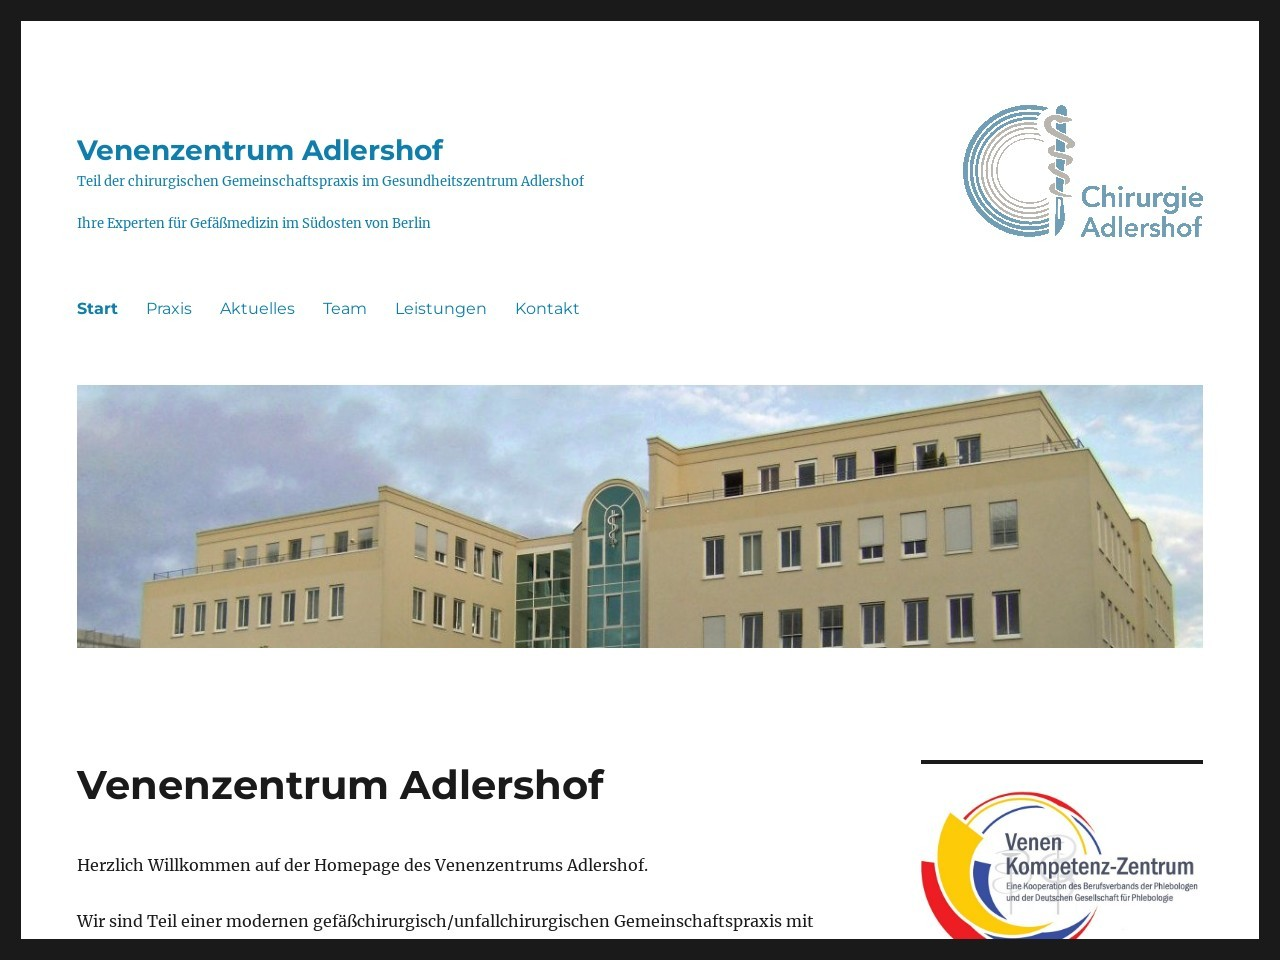 Venenzentrum Adlershof